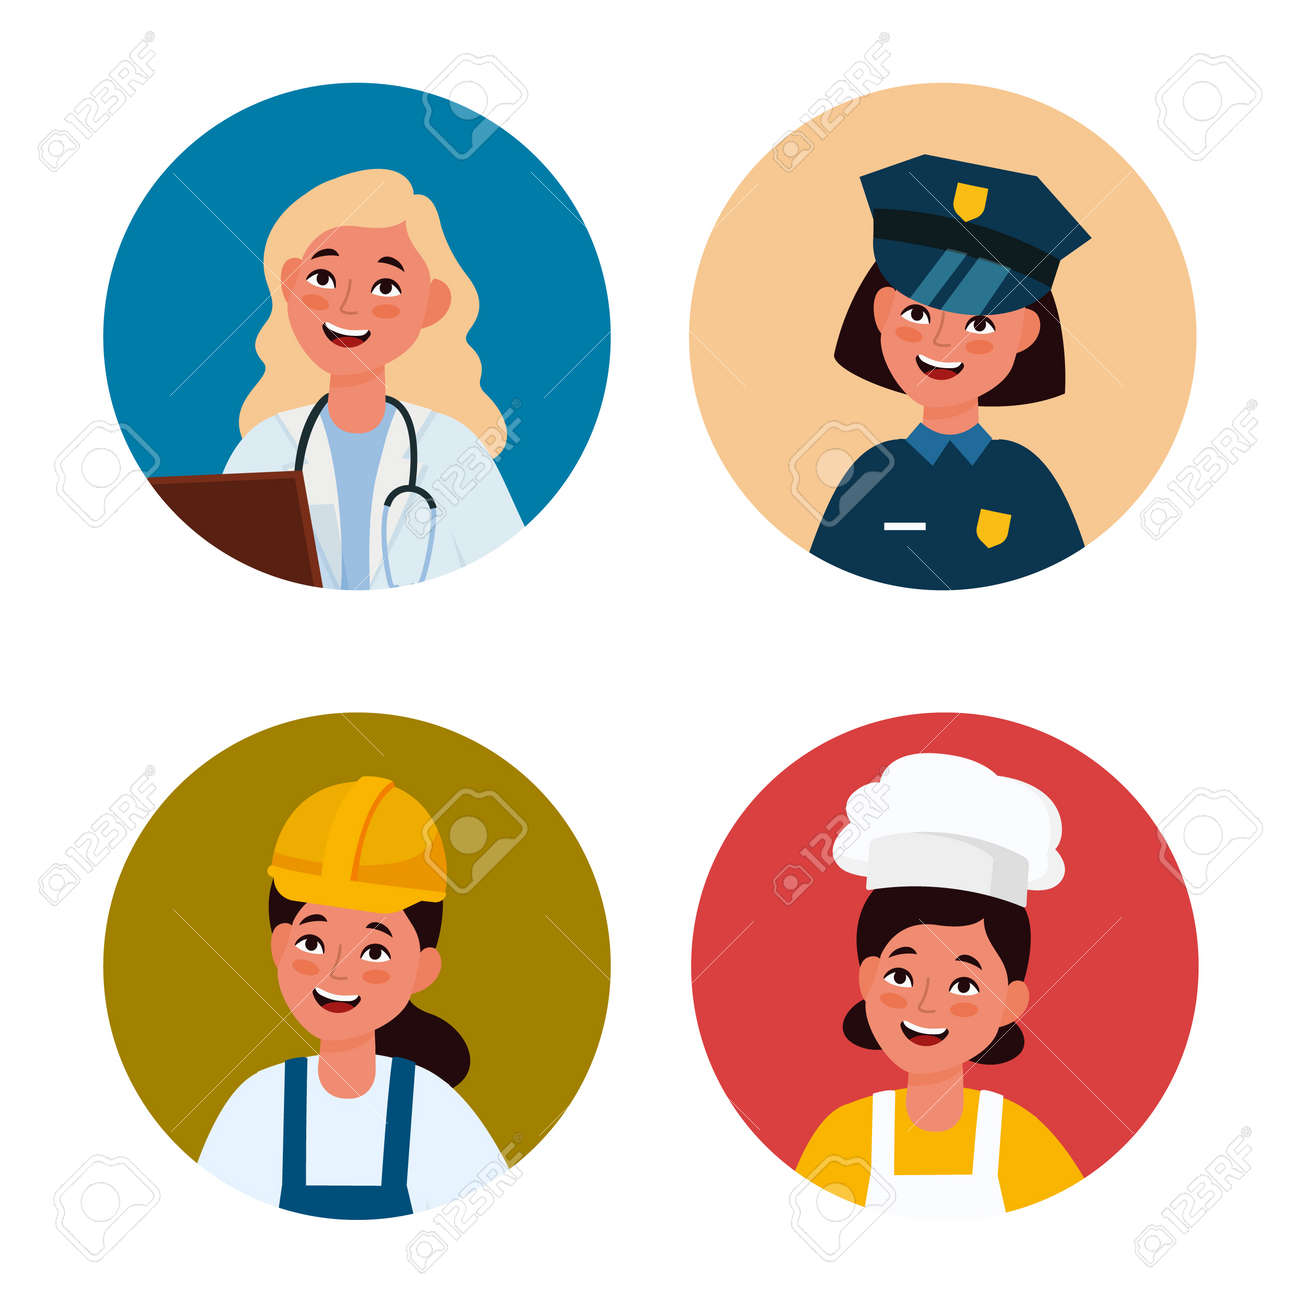 Professional female avatar. Workers women in uniform. Circles with happy faces. Girls wear doctor and police officer, builder or chef costumes. Cartoon portraits. Vector profiles set - 171599916